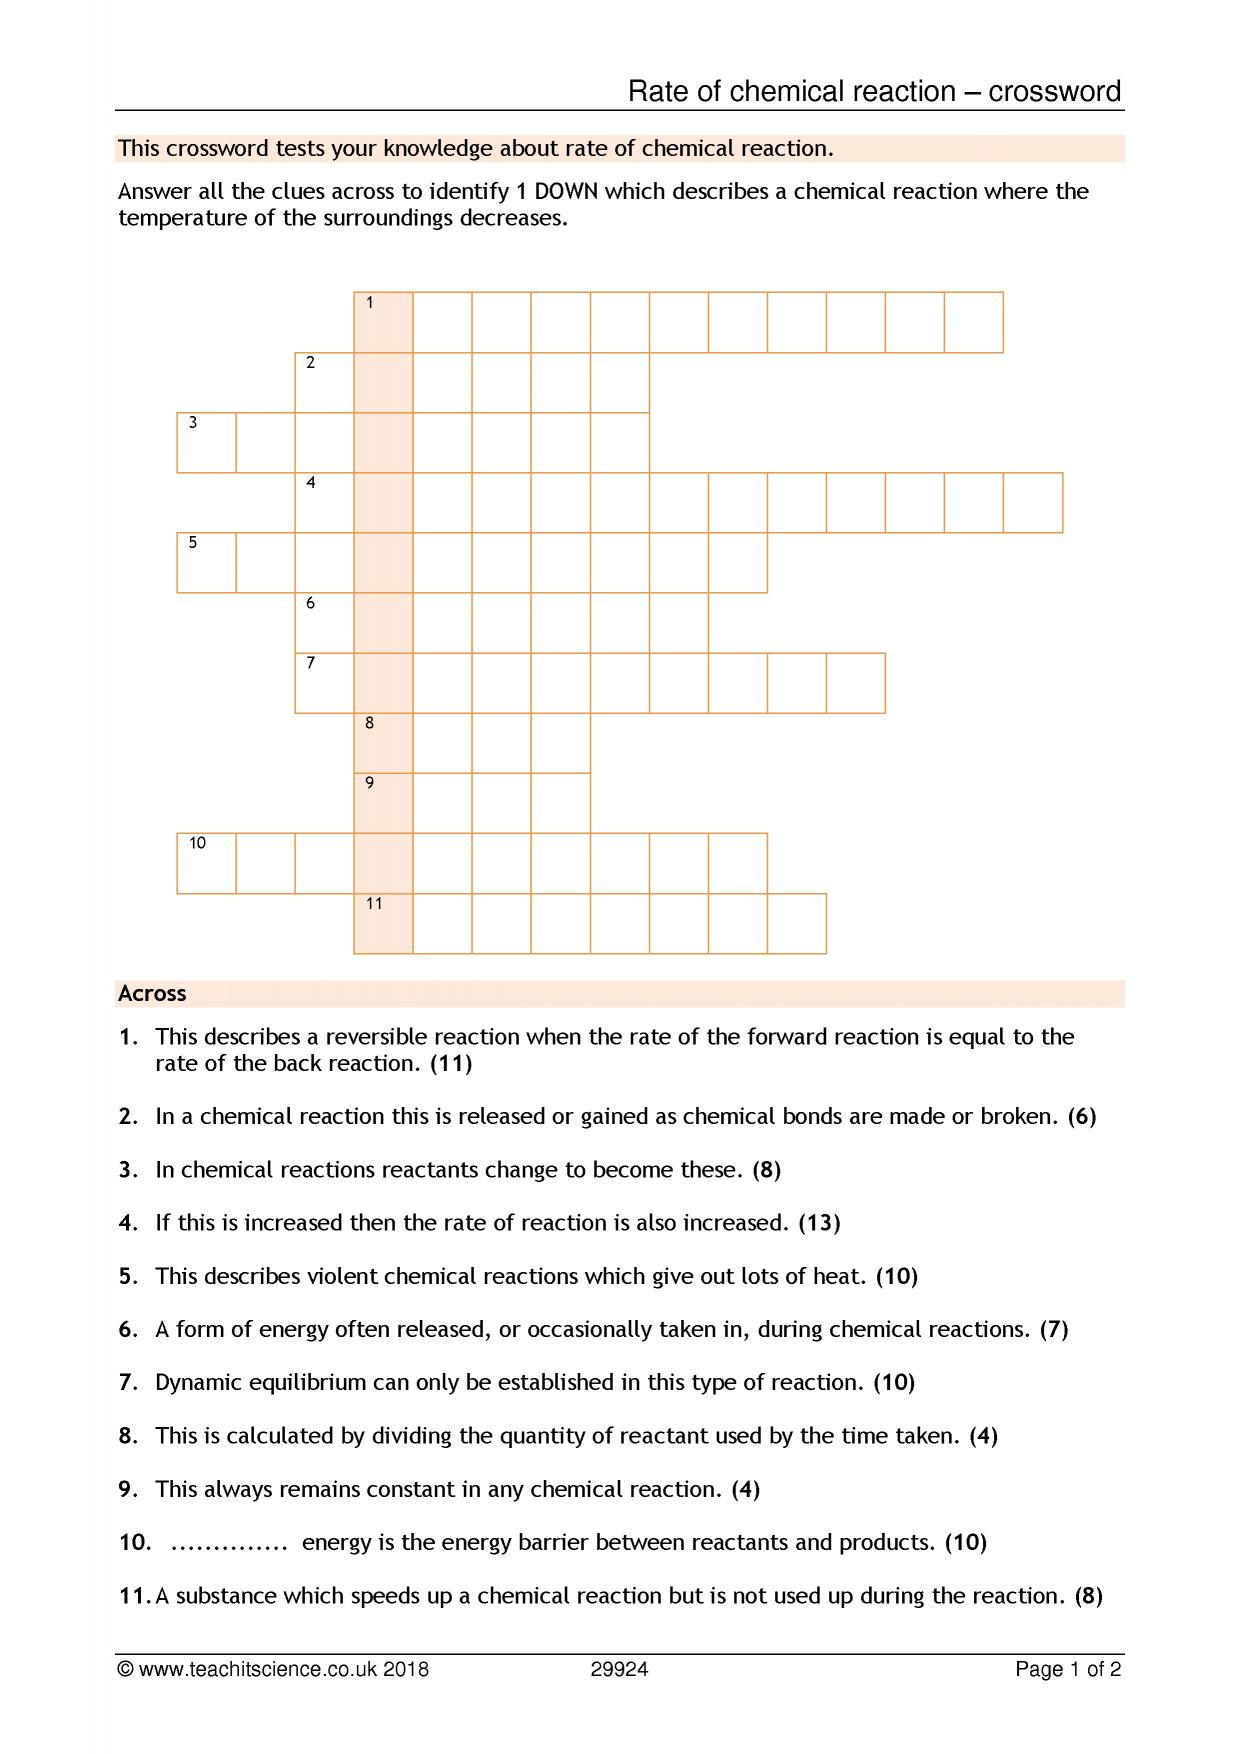 Worksheet 3 Balancing Equations And Identifying Types Of